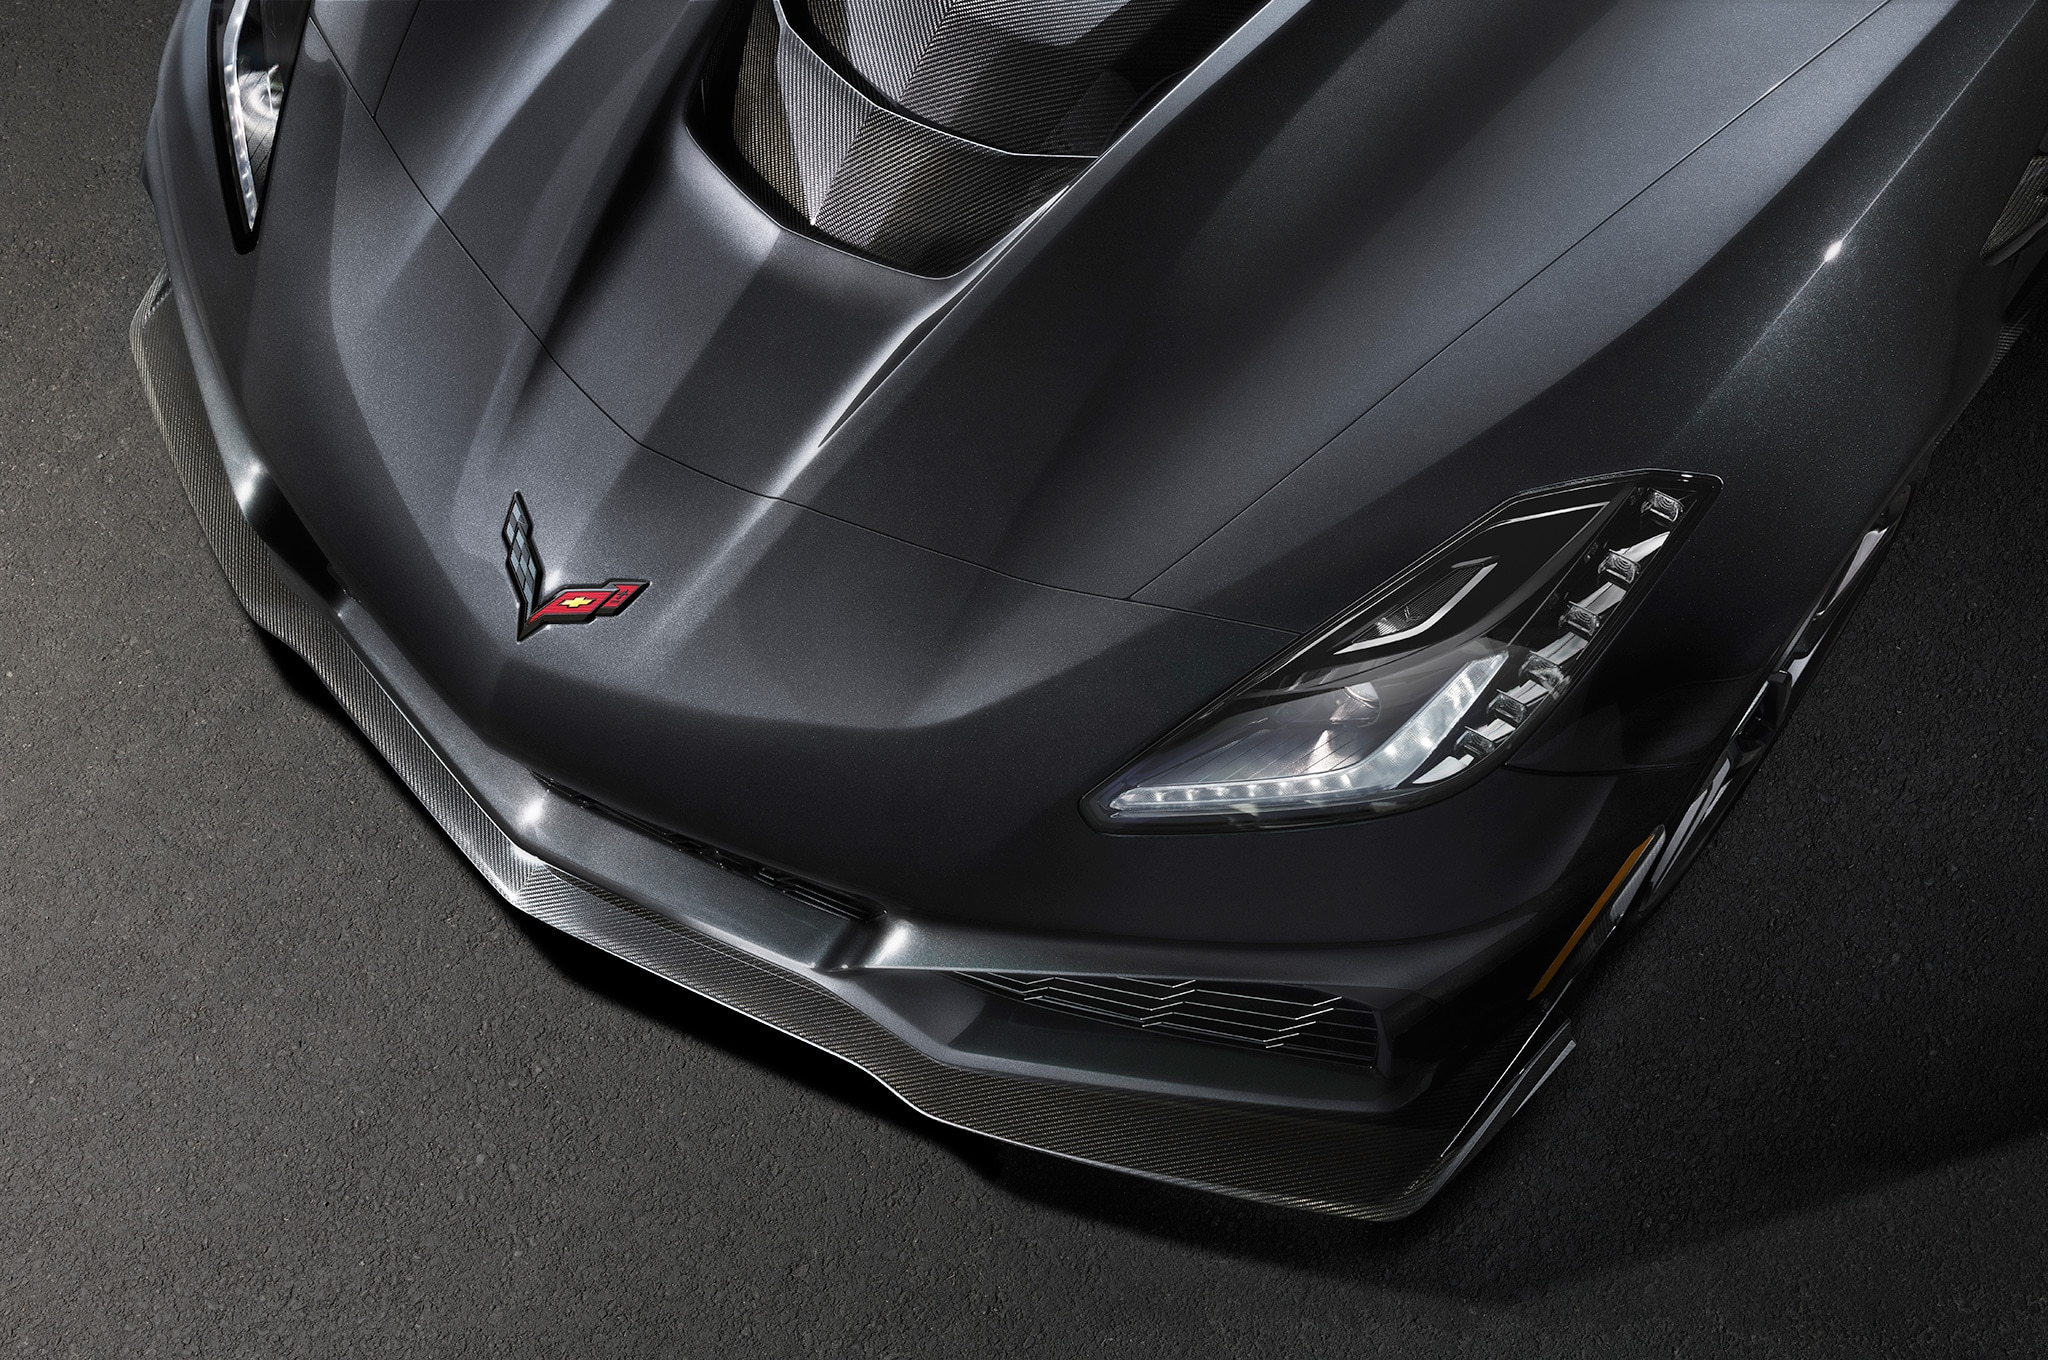 TEASED! The Hottest Chevrolet Corvette, The ZR1, Debuts TOMORROW!